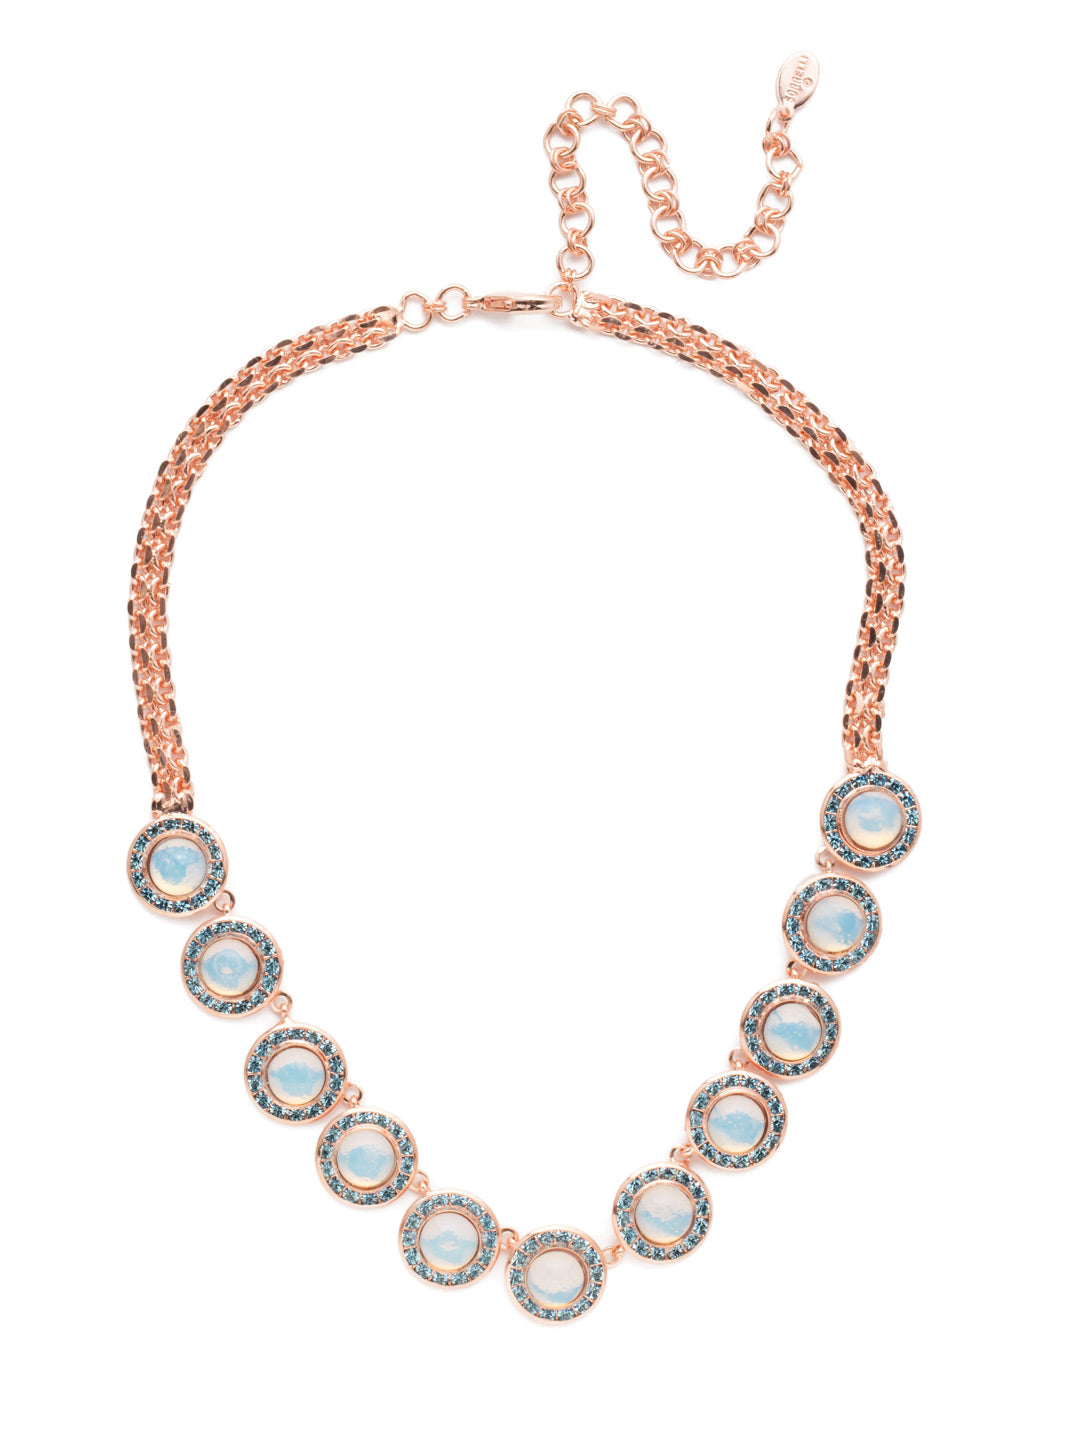 Kaia Statement Necklace - NET10RGCAZ